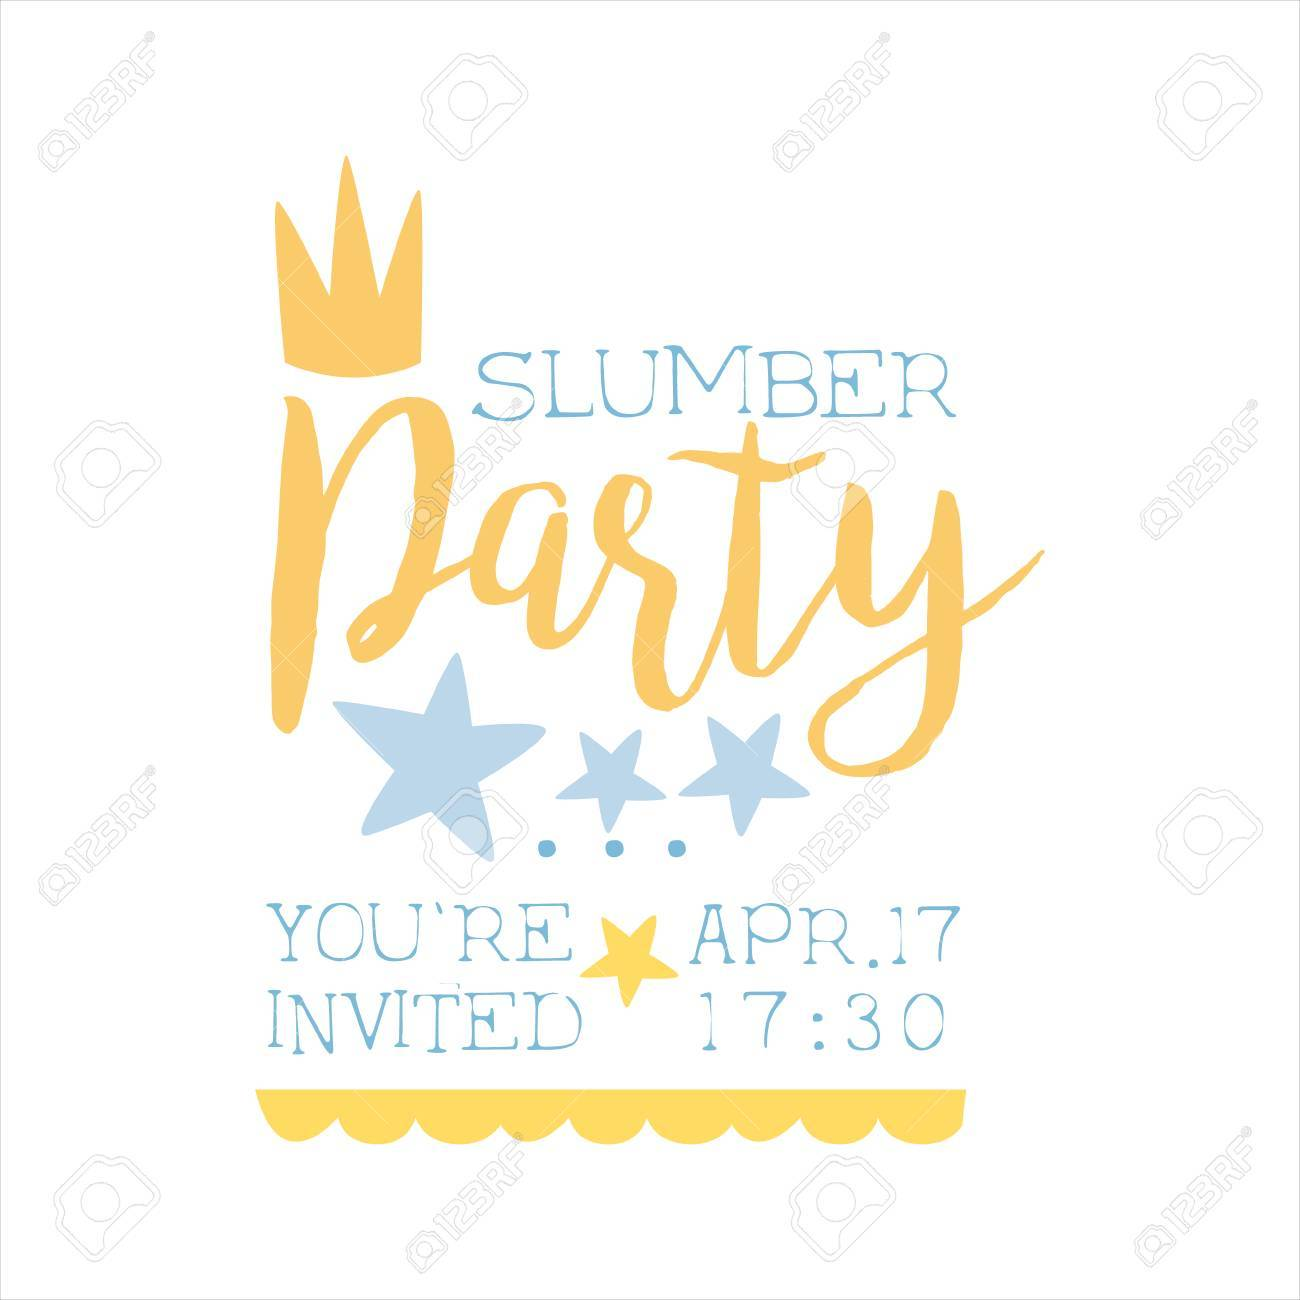 girly pajama party invitation card template with crown inviting